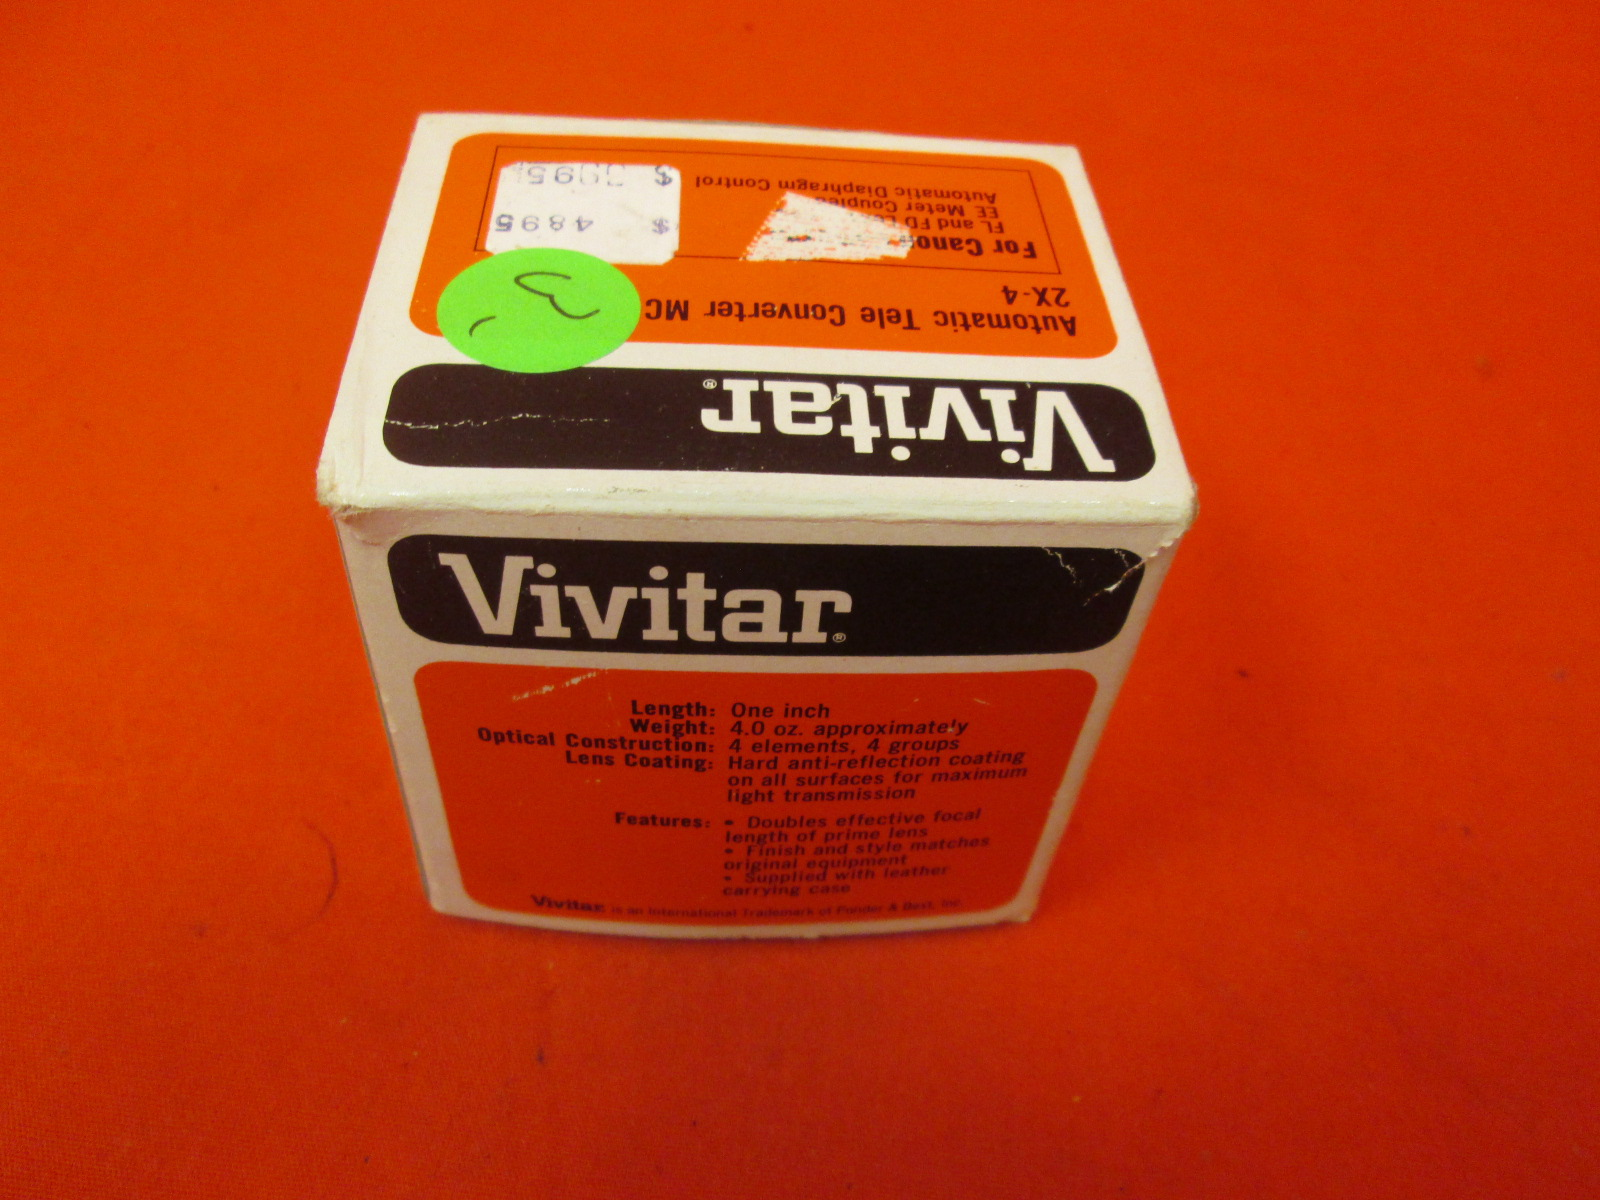 Vivitar Dedicated Processor Module Dm/n For Nikon Em Cameras 230234926